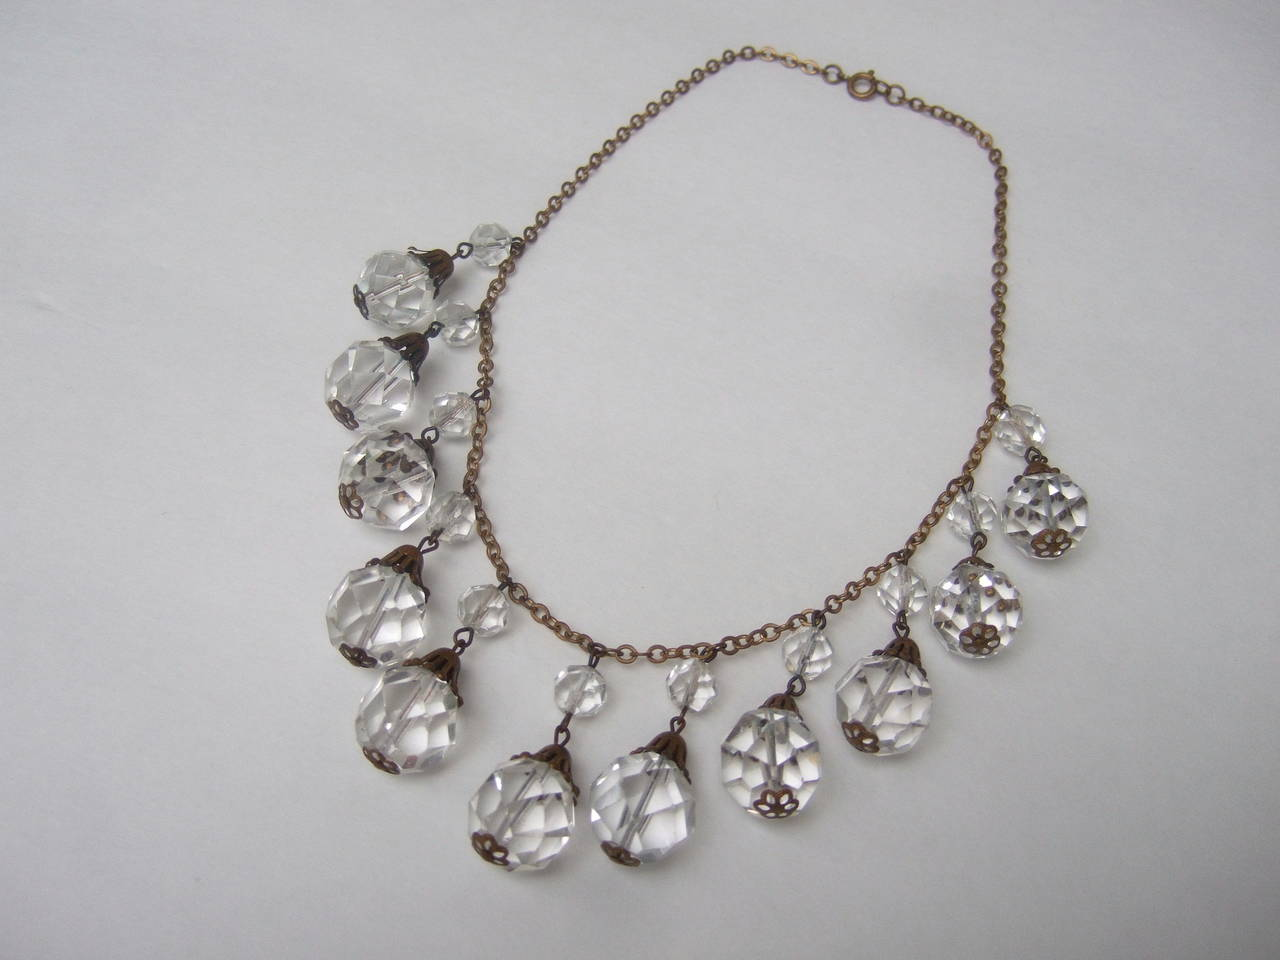 Opulent Art Deco Crystal Drop Necklace c 1940s 9